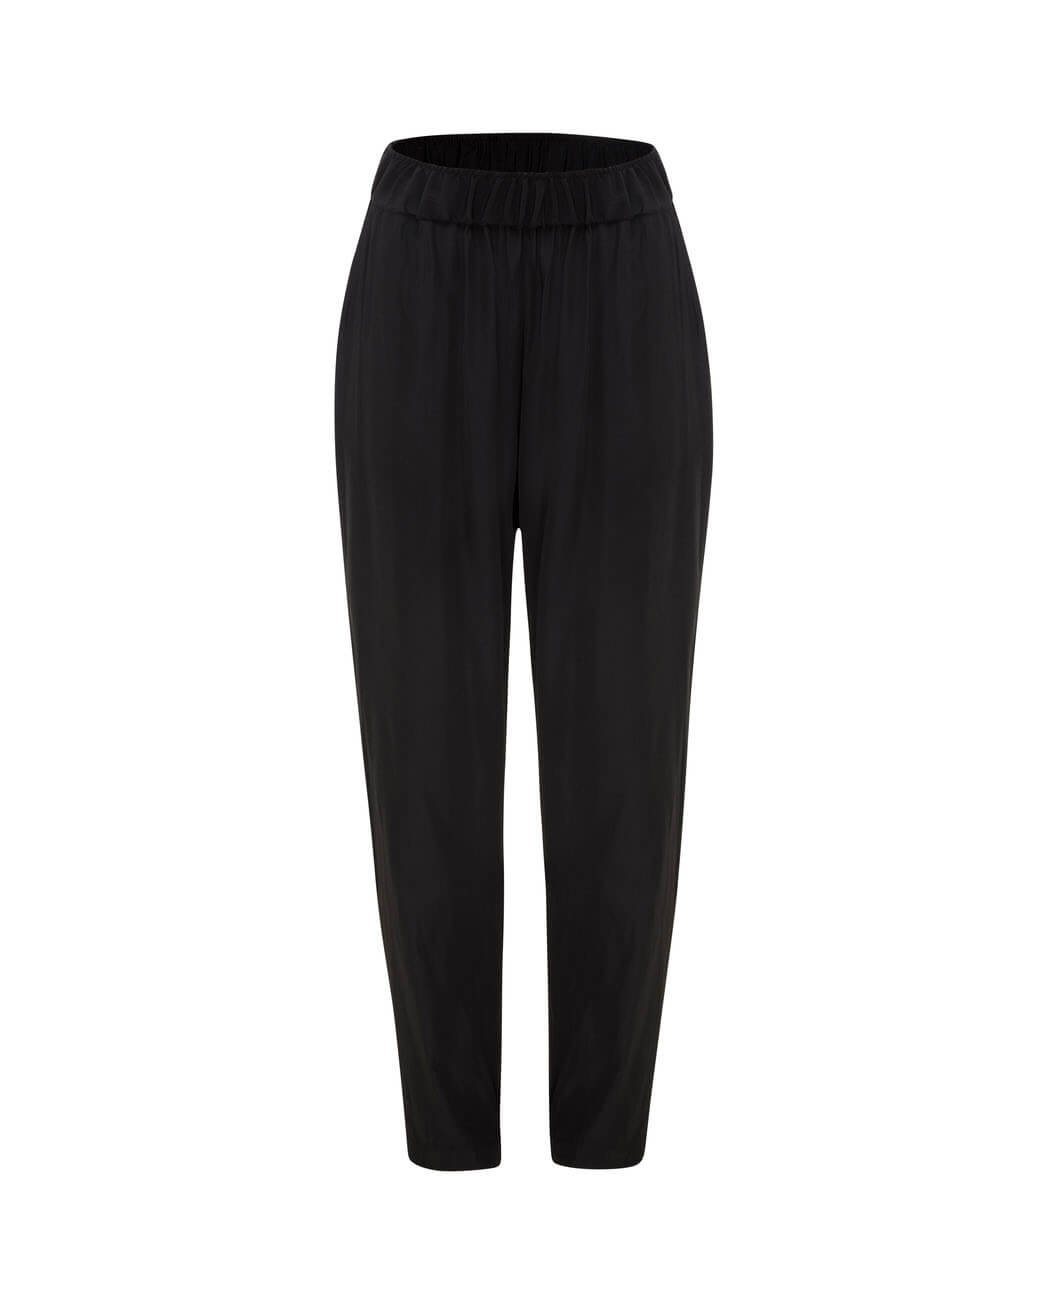 SOFT NOMAD PANT - black, navy